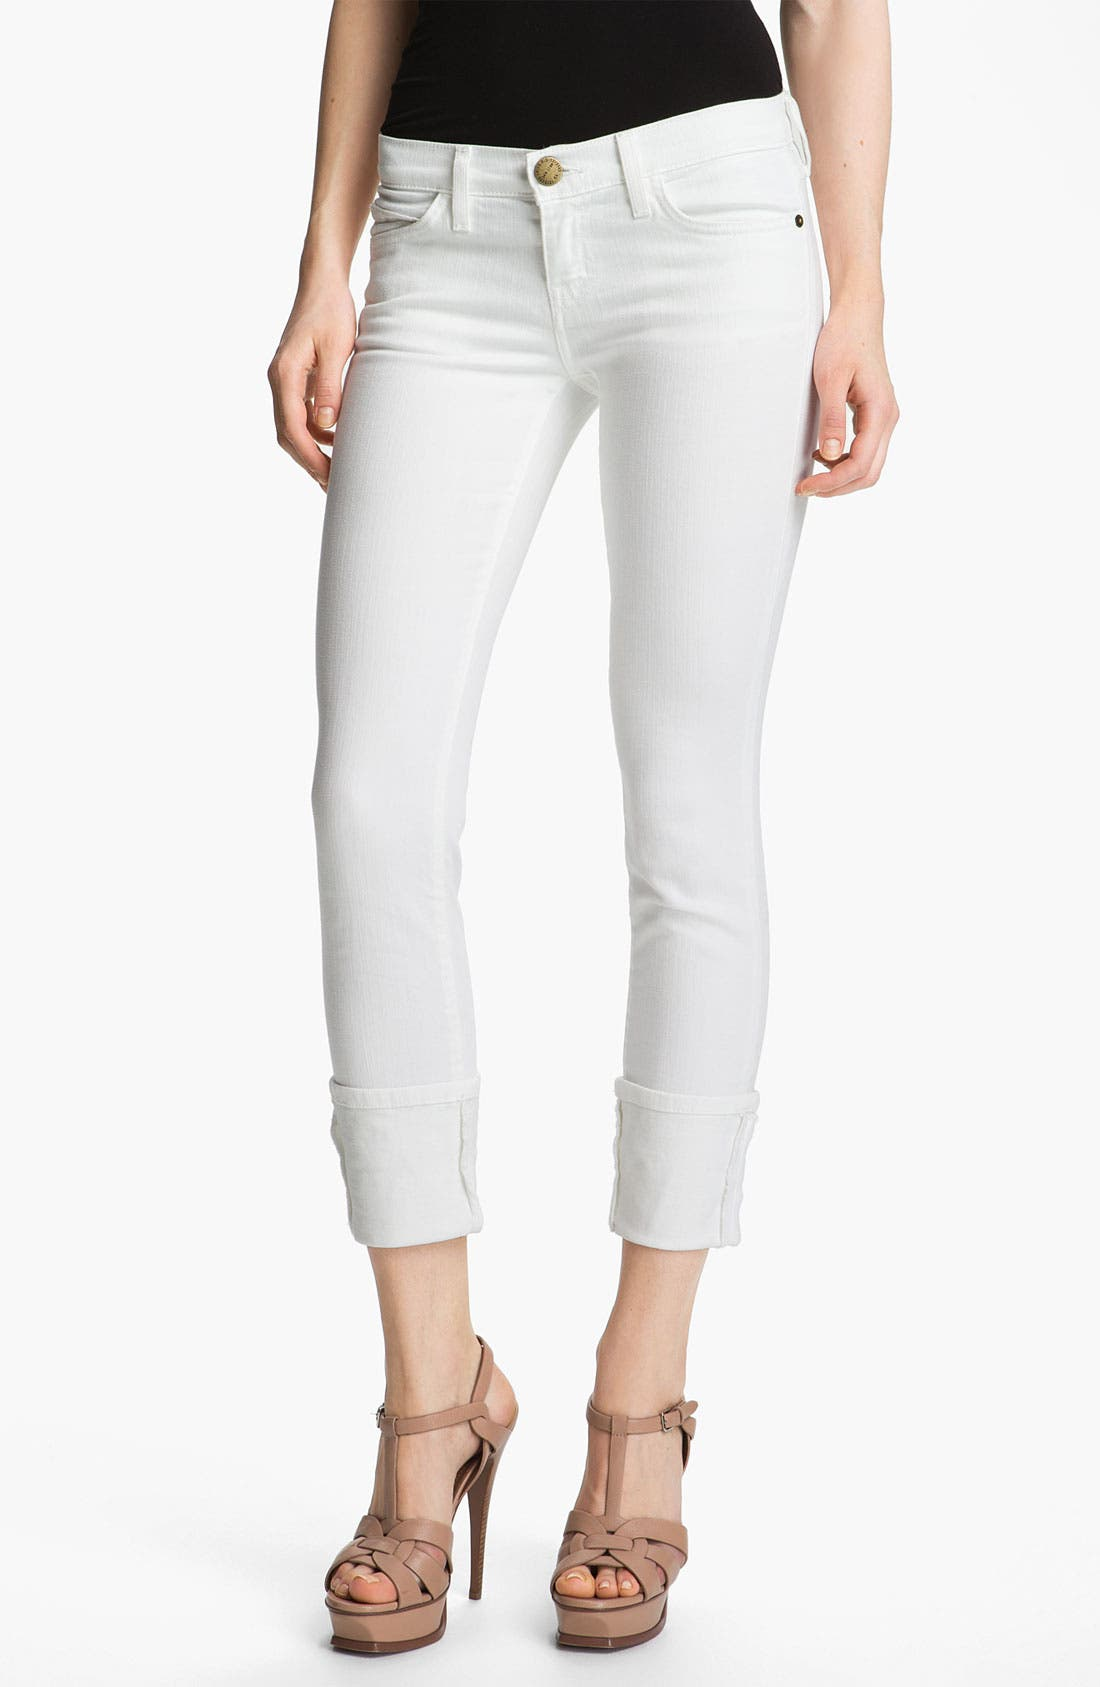 Alternate Image 1 Selected - Current/Elliott 'The Beatnik' Skinny Stretch Jeans